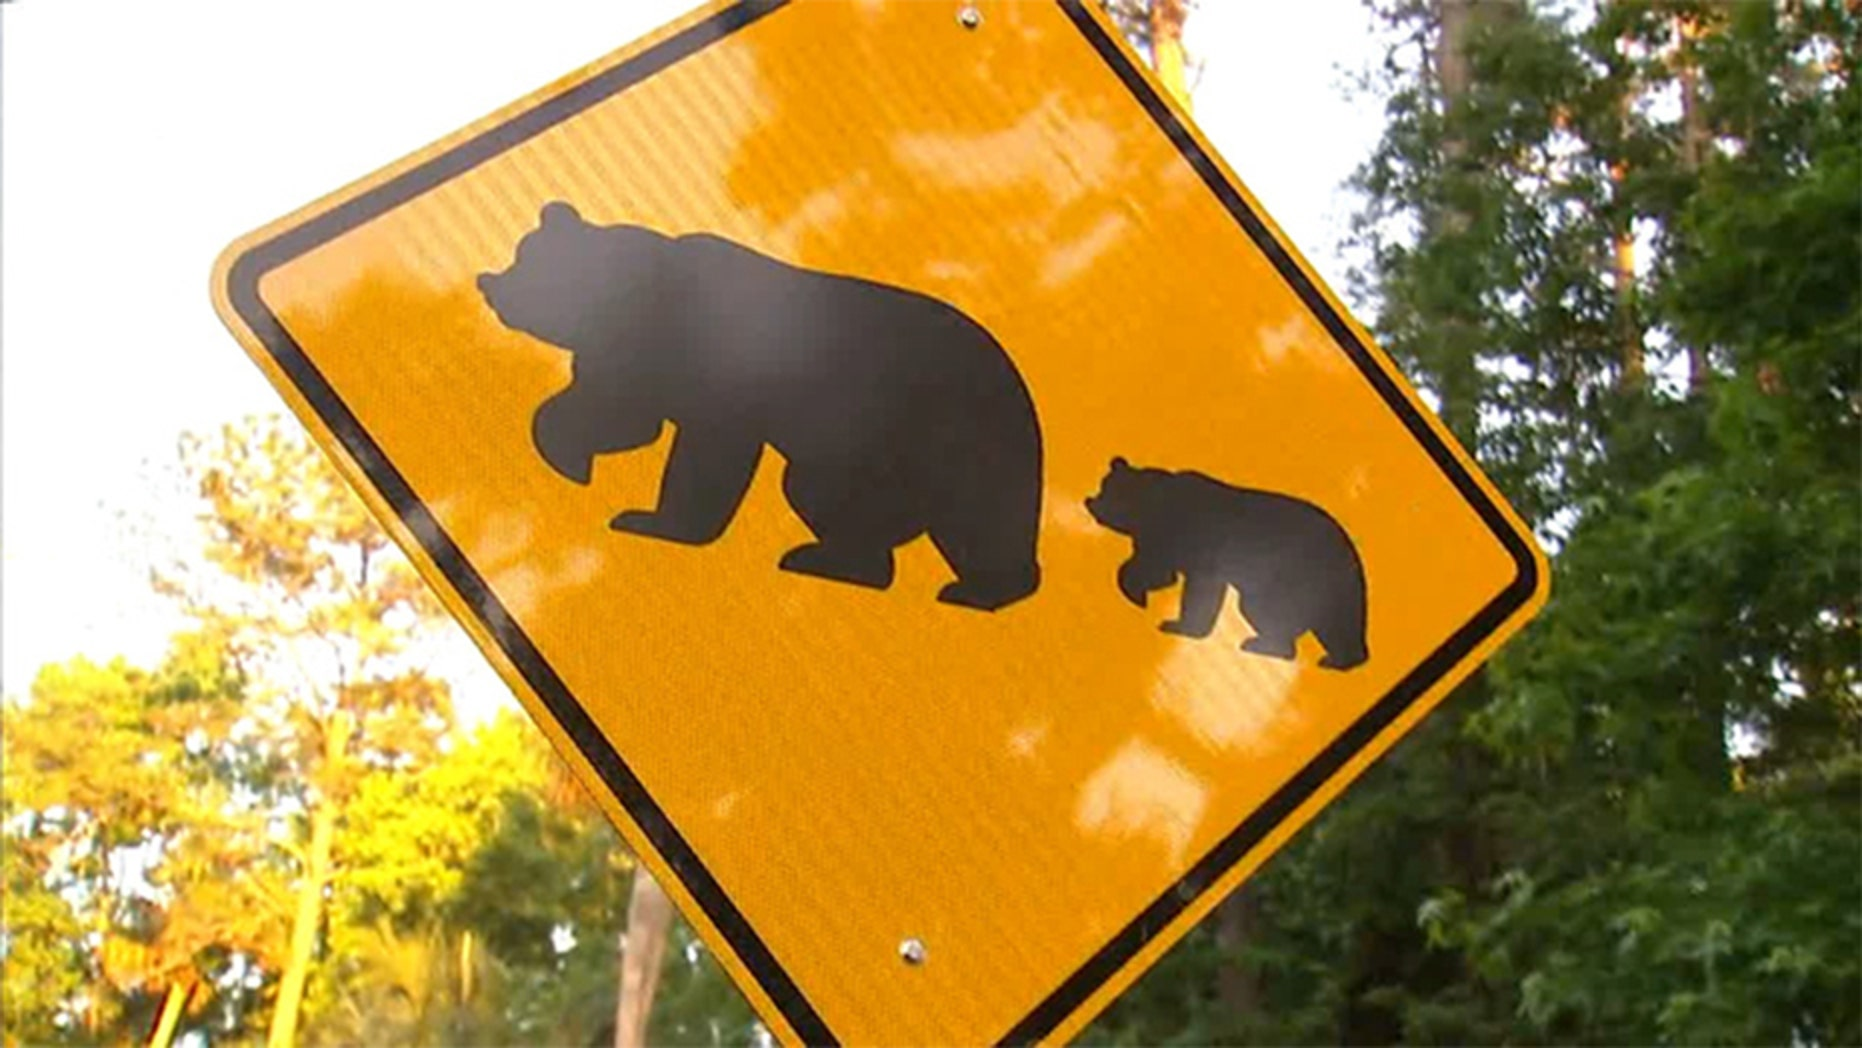 A bear crossing sign at a community in Longwood, Fla. Residents there say an aggressive bear has been attacking dogs this week.